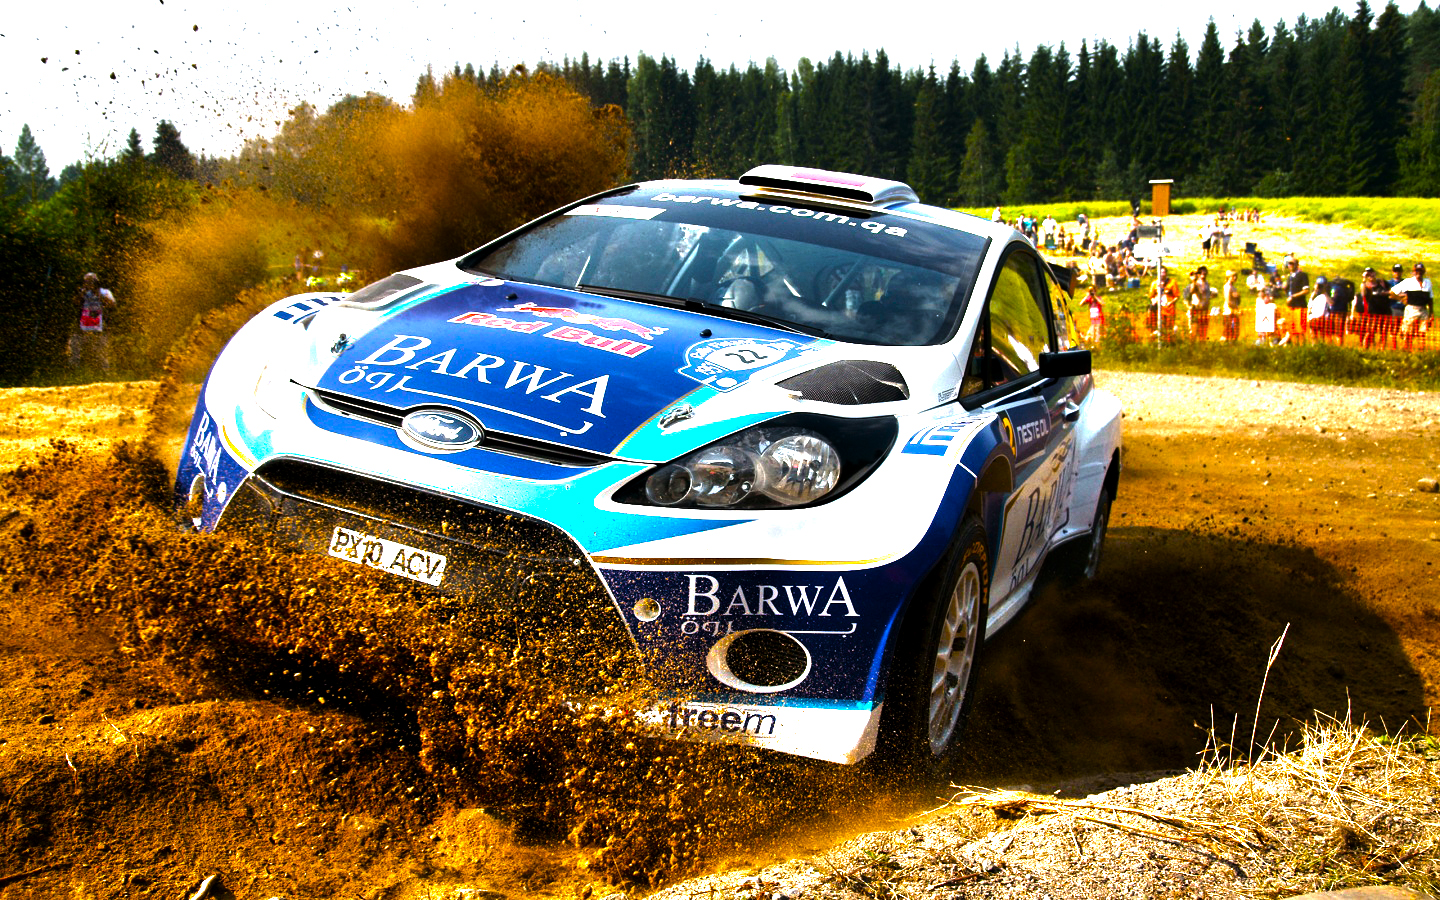 rally_auto_racing_HDR_csurga